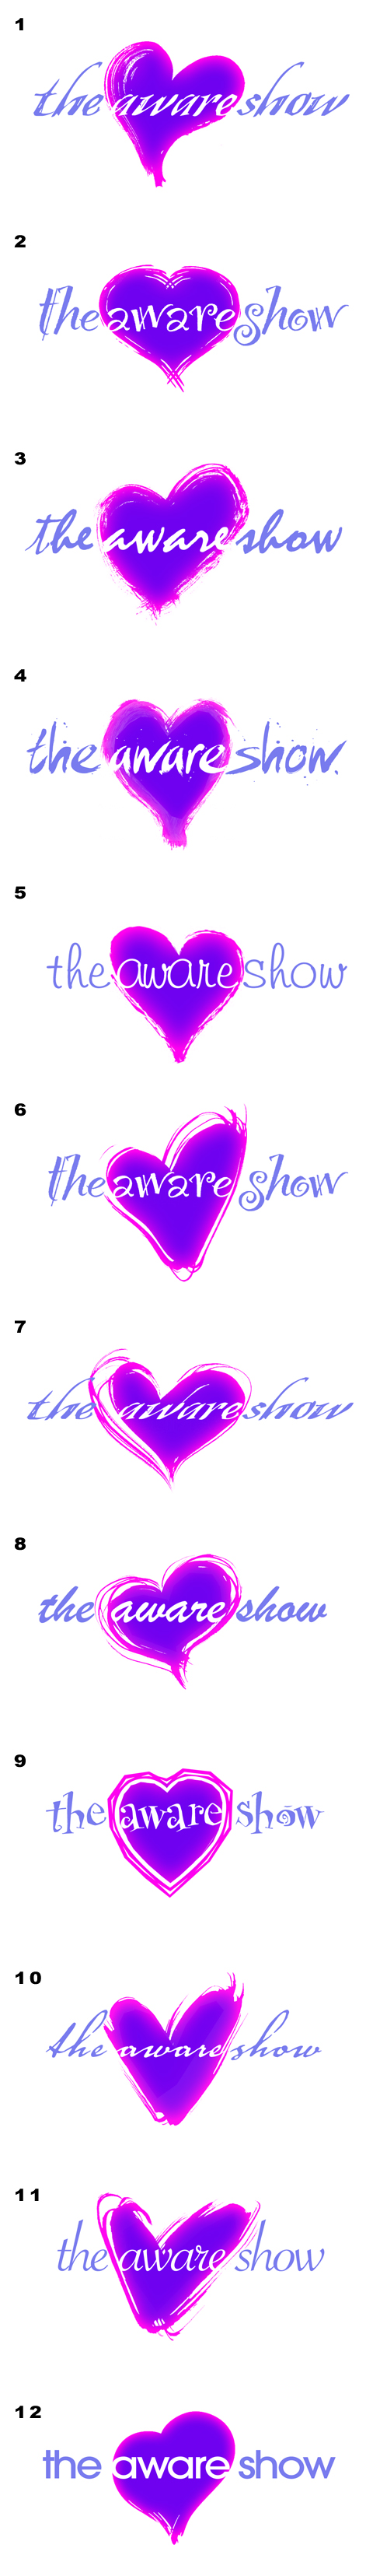 The Aware Show Logo Variations